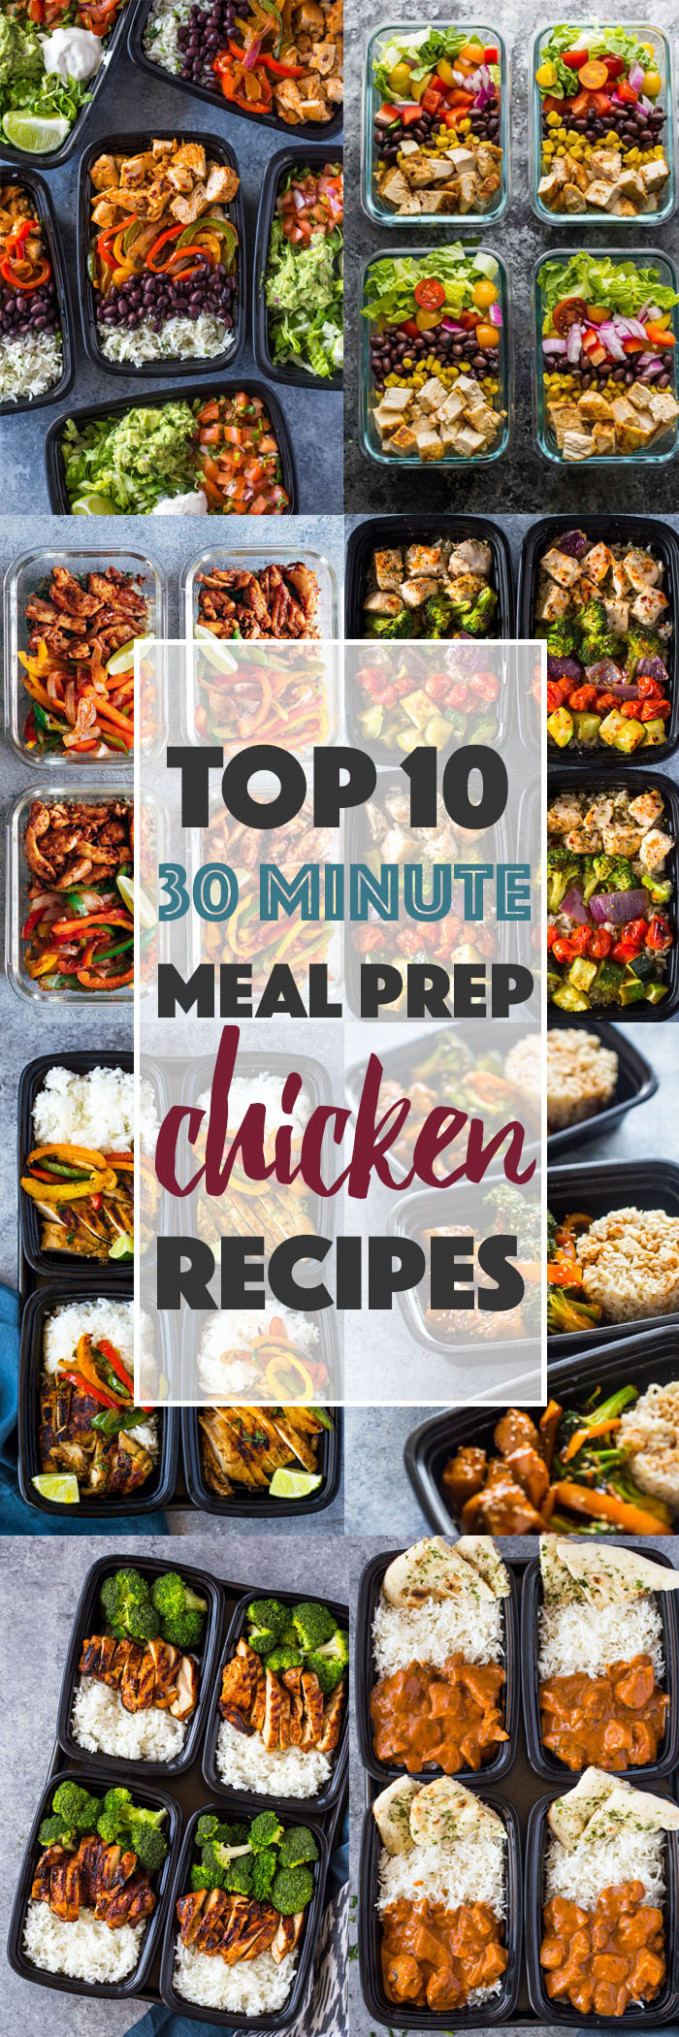 Top 10 (10 Minute) Meal-prep Chicken Recipes | Gimme Delicious - dinner recipes quick healthy